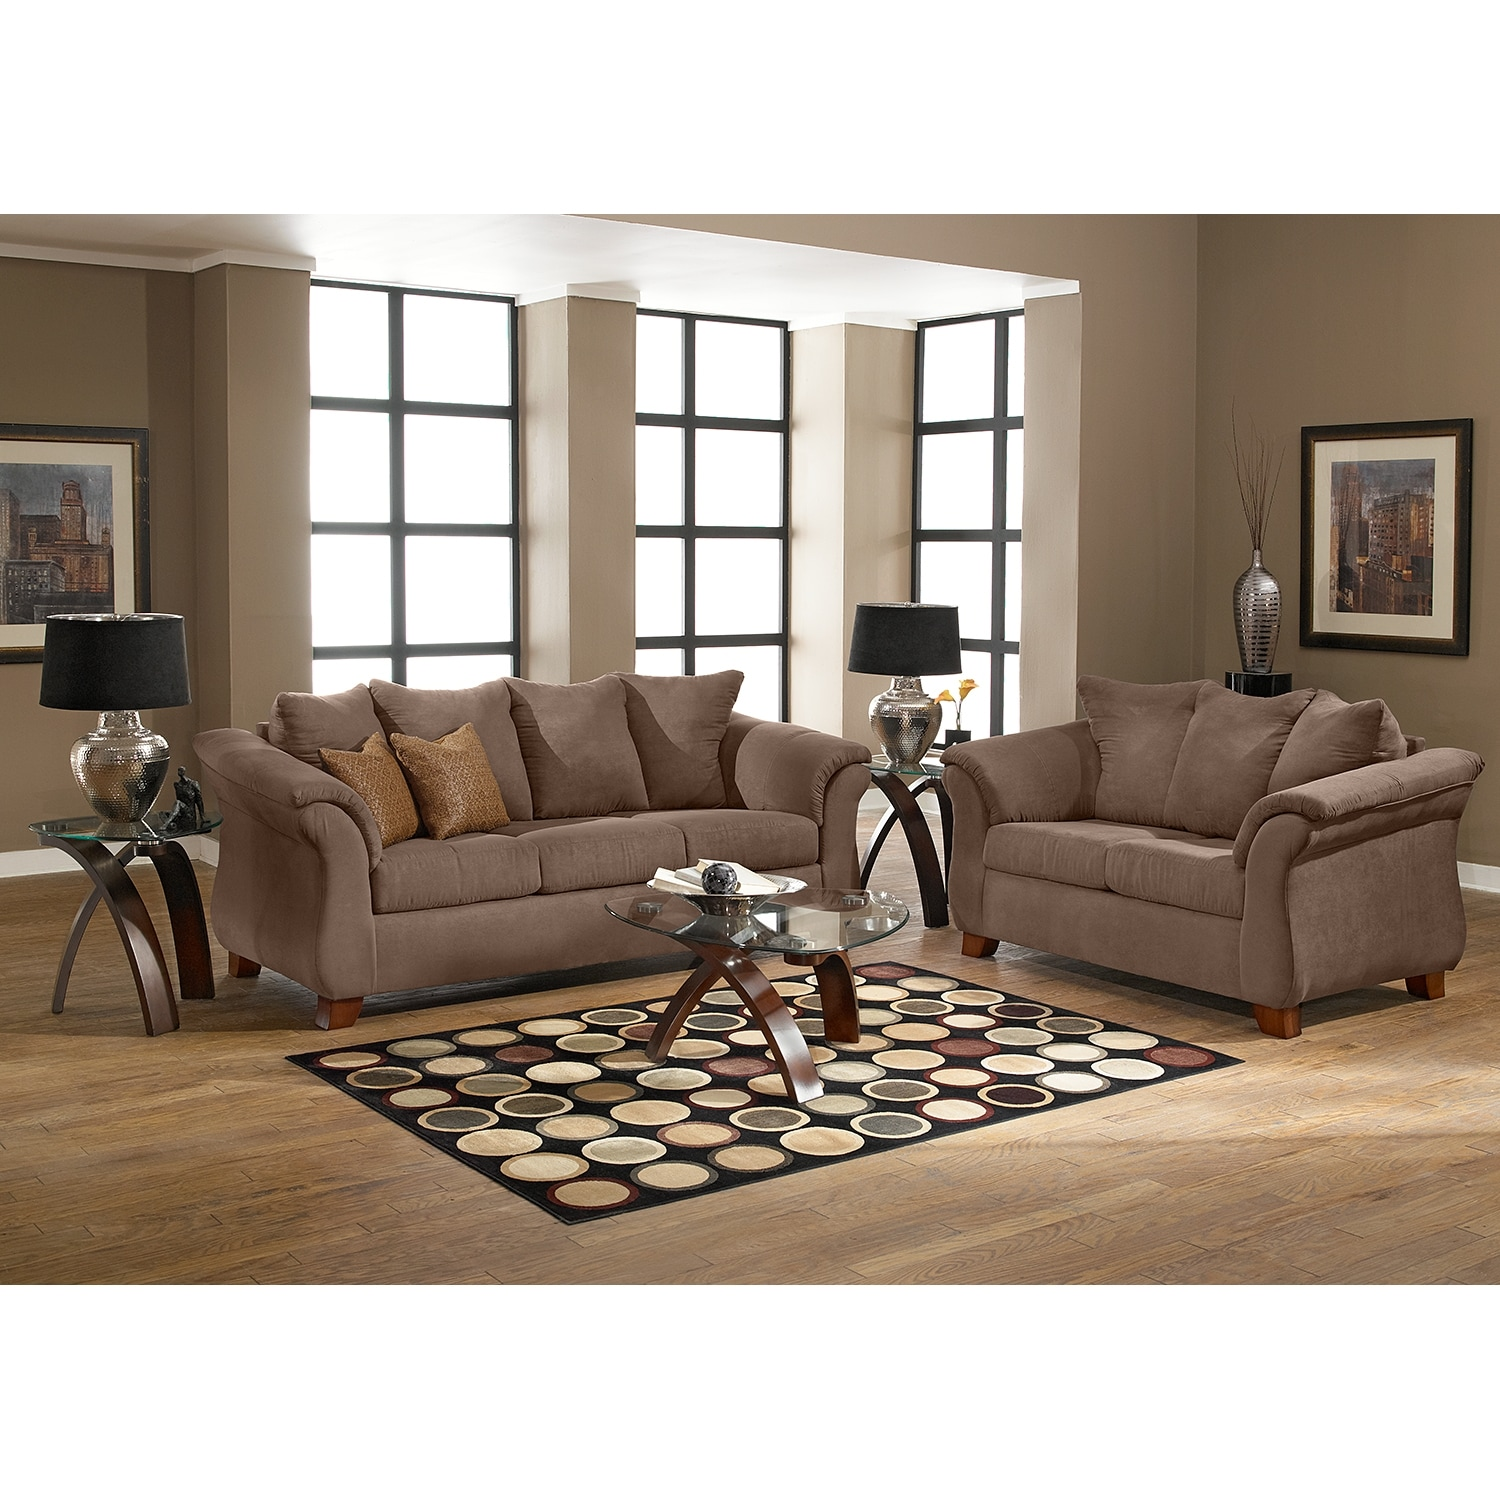 Adrian sofa taupe american signature furniture for Sitting room sofa